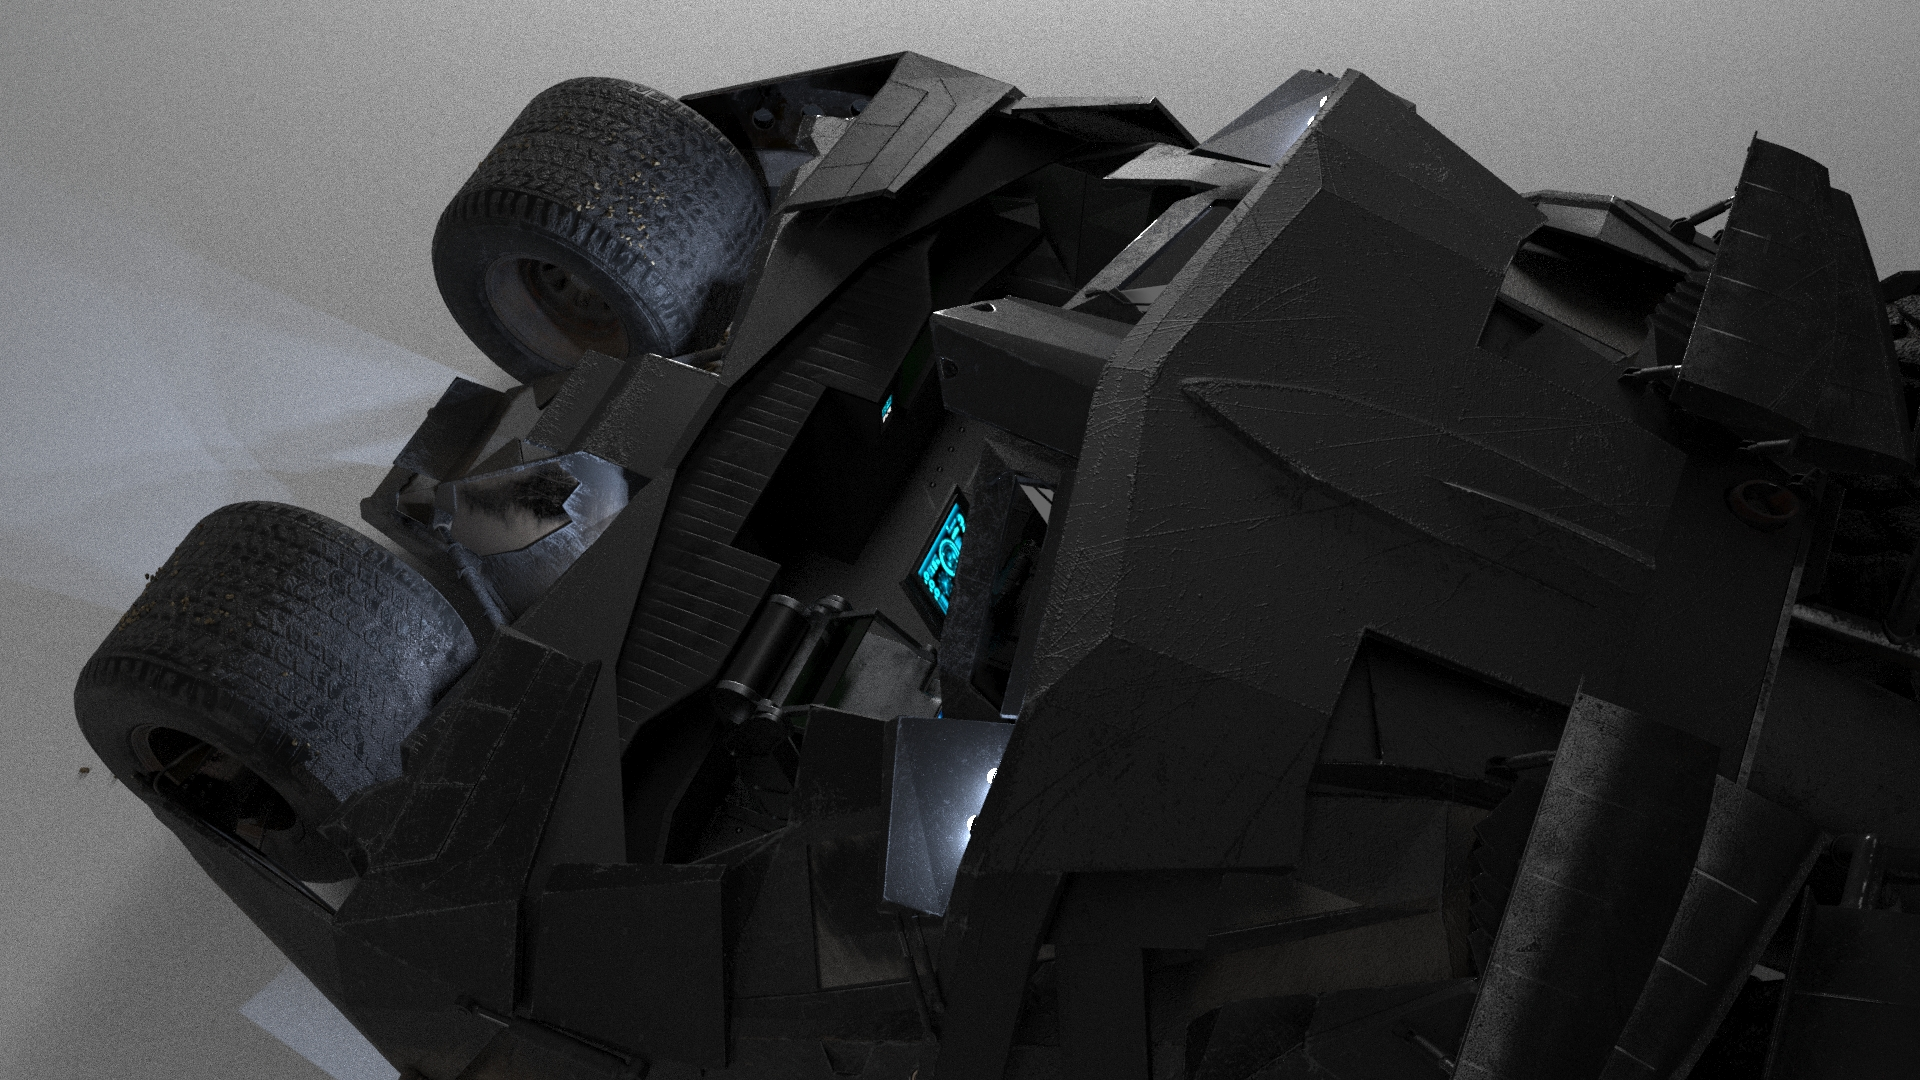 Batmobile Black Knight in 3d max corona render image